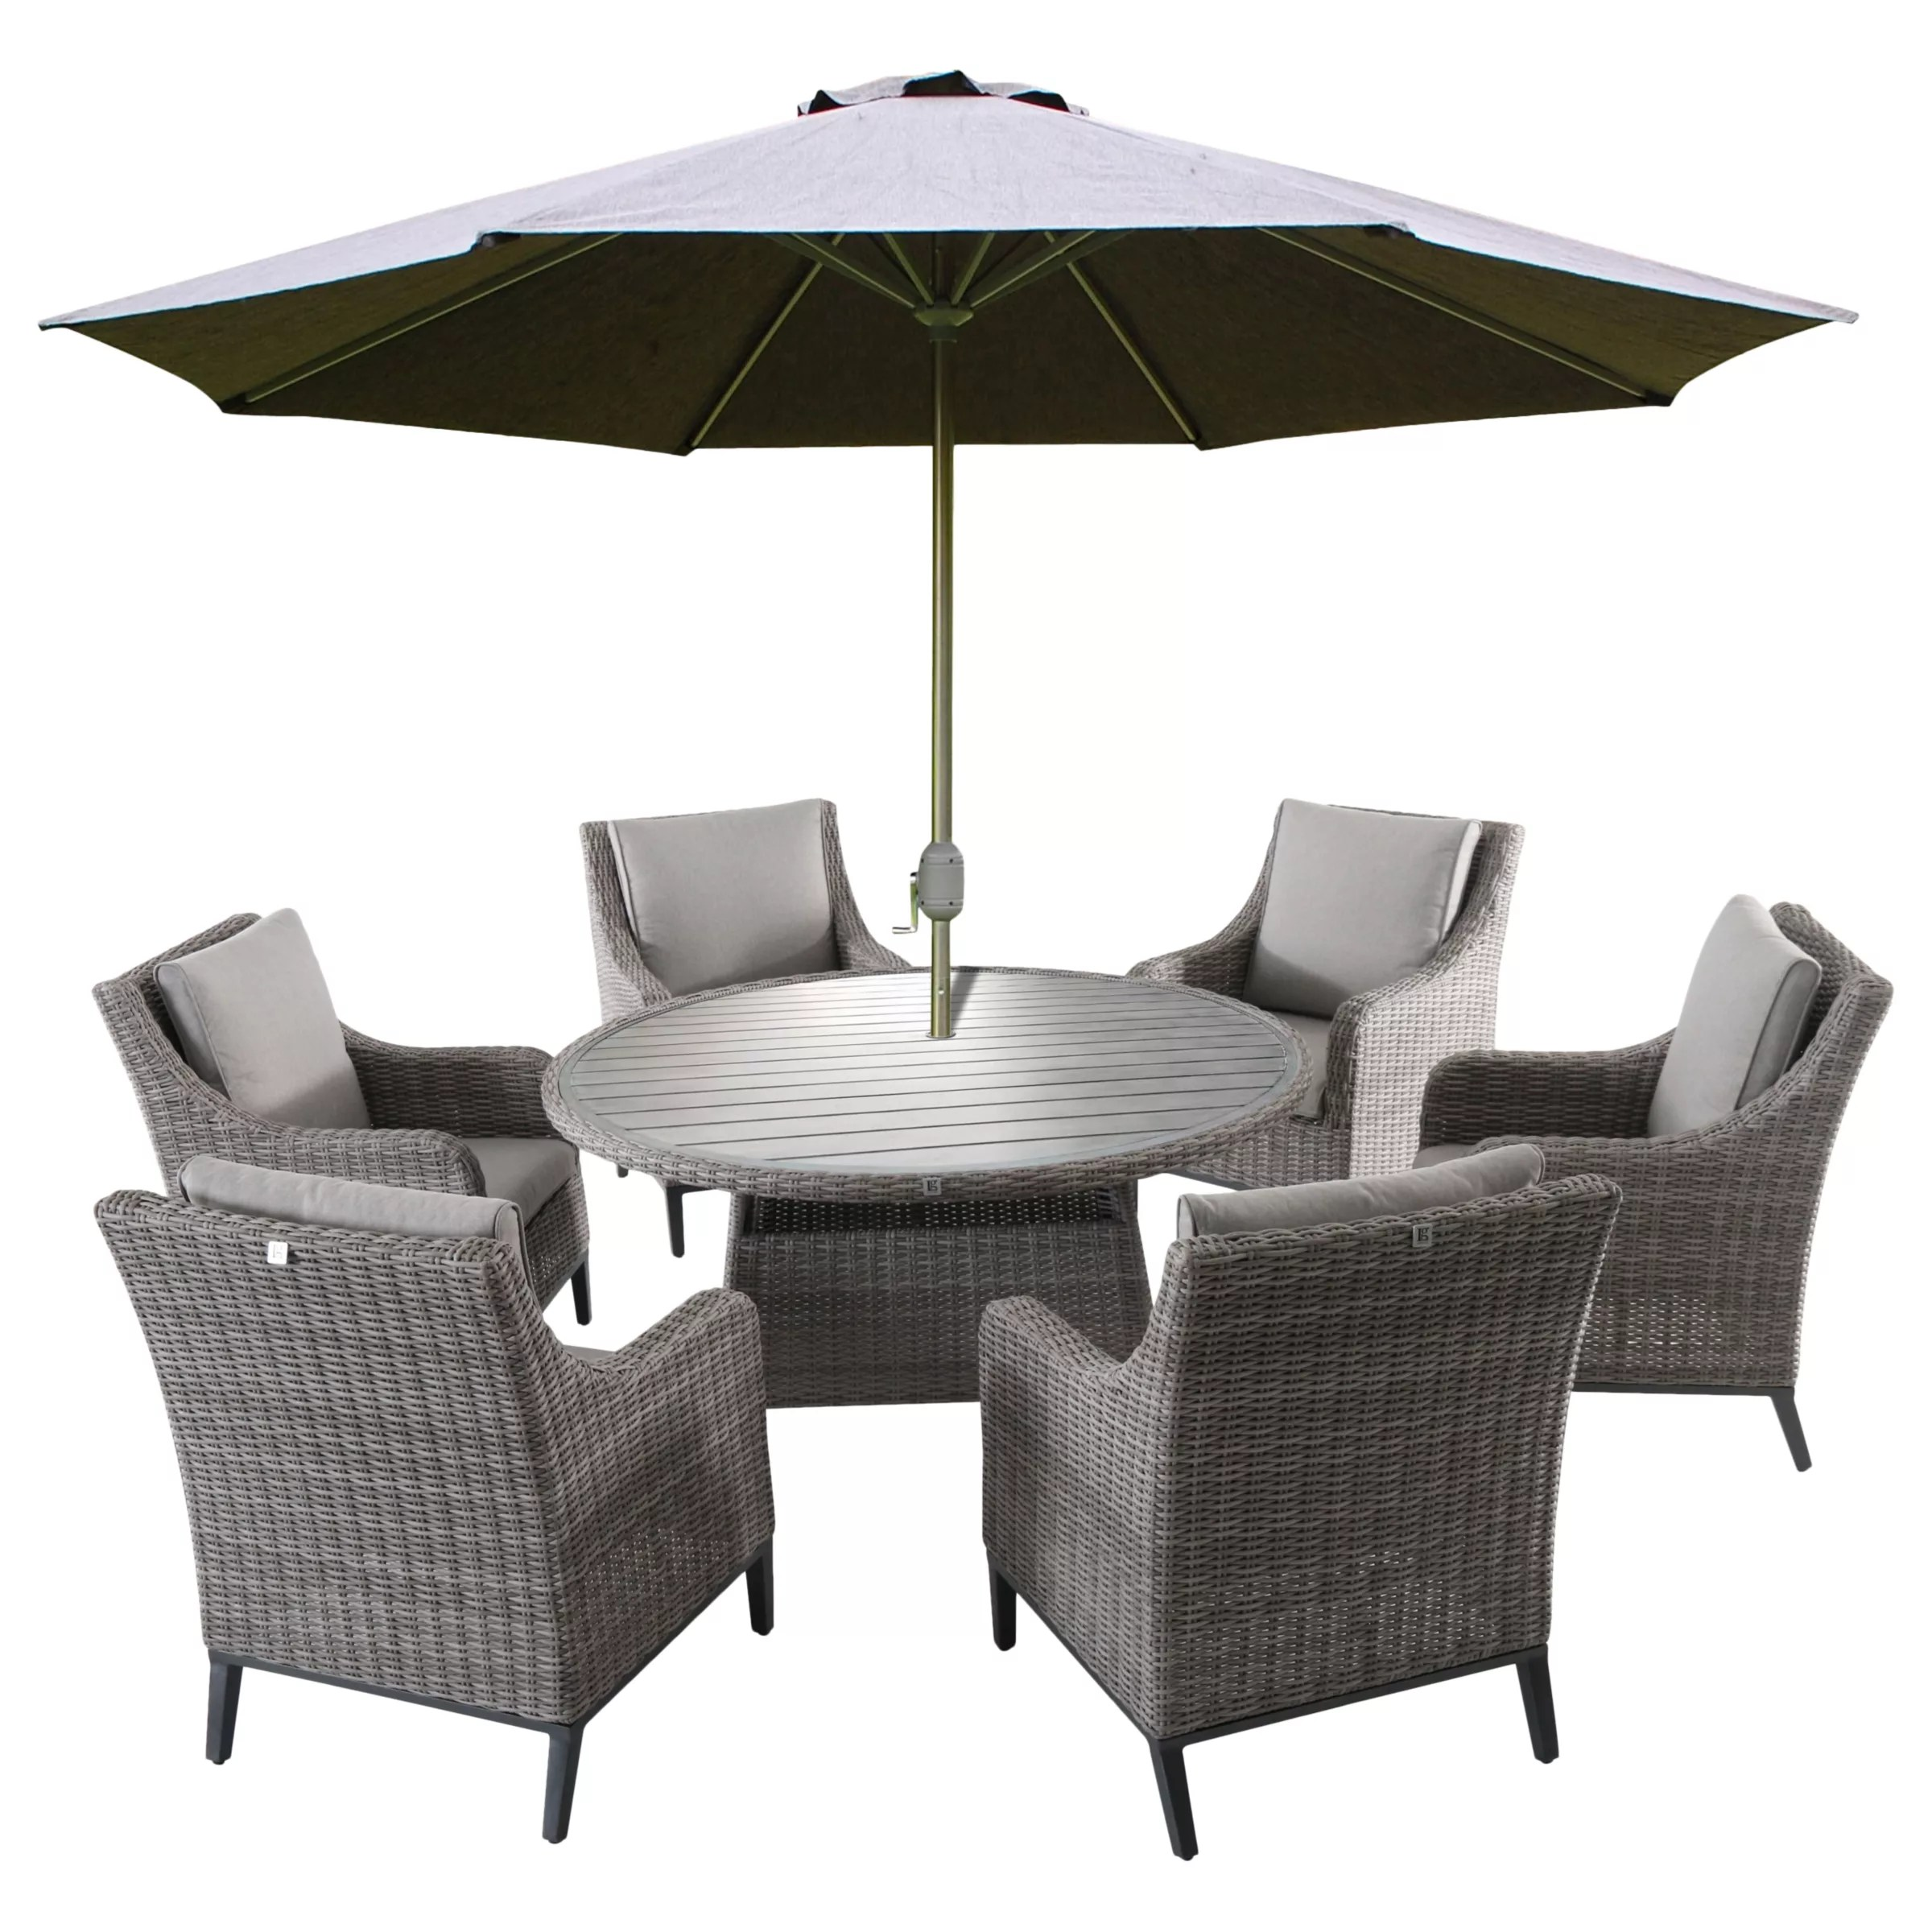 copenhagen dining chairs shower chair bed bath and beyond lg outdoor 6 seater garden table